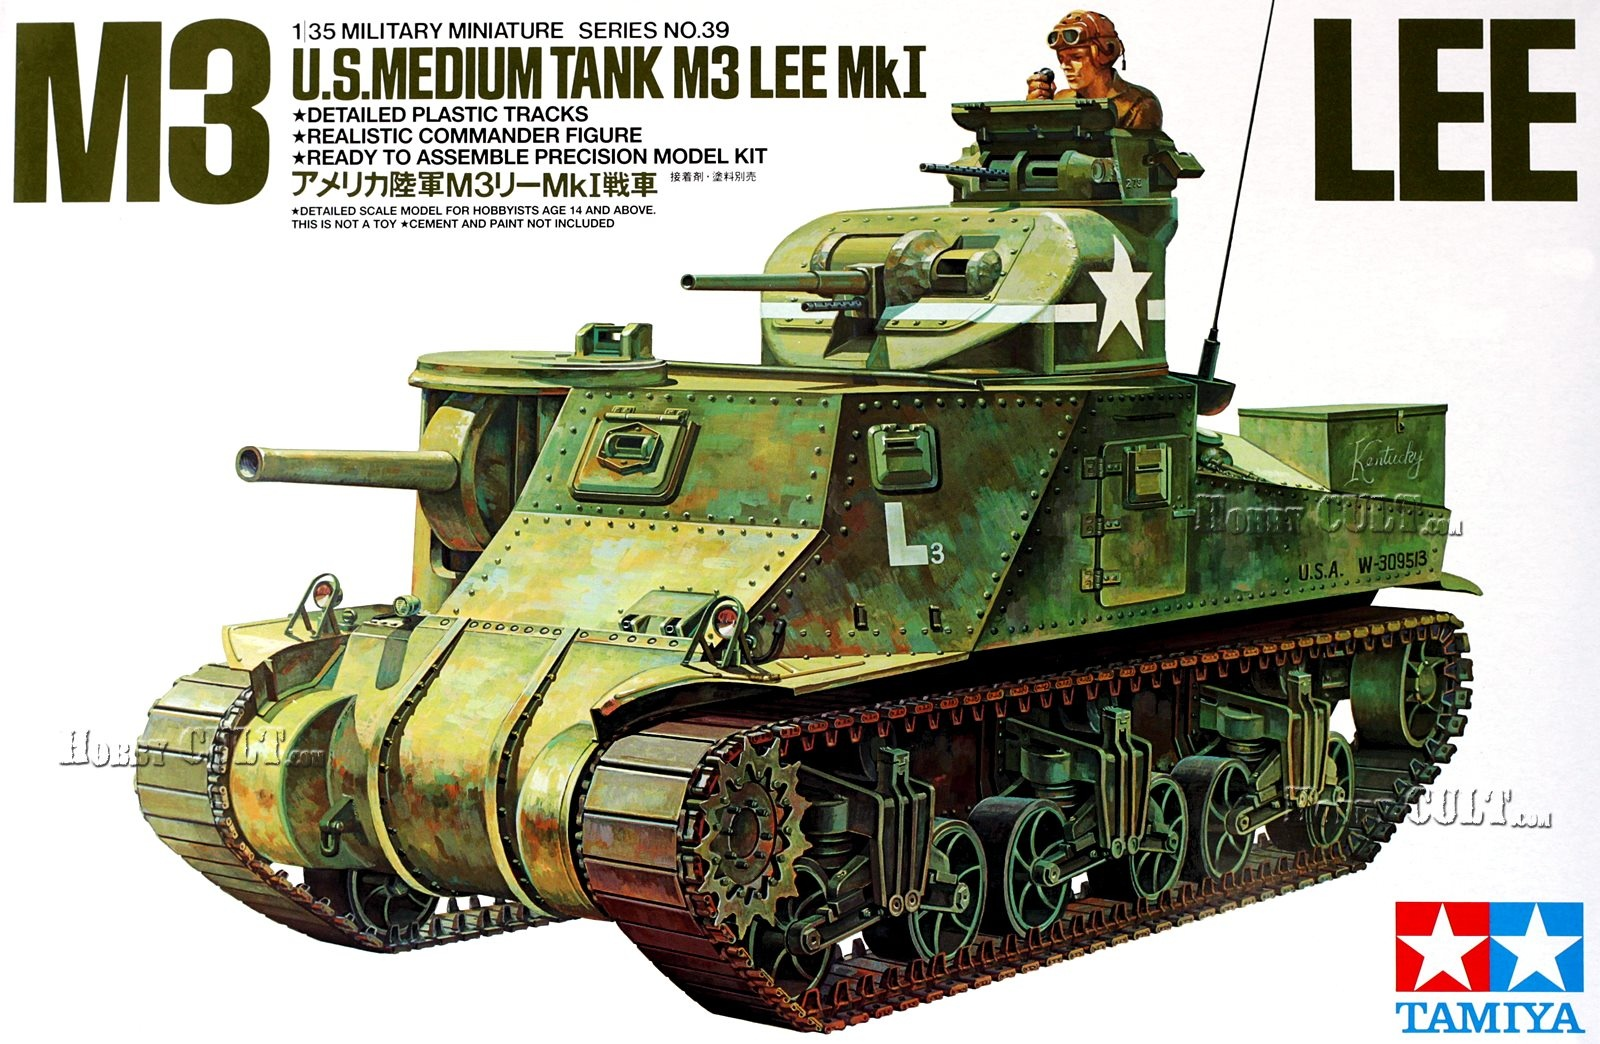 1:35 U.S. Medium Tank M3 Lee Mk.I w/Commander Figure